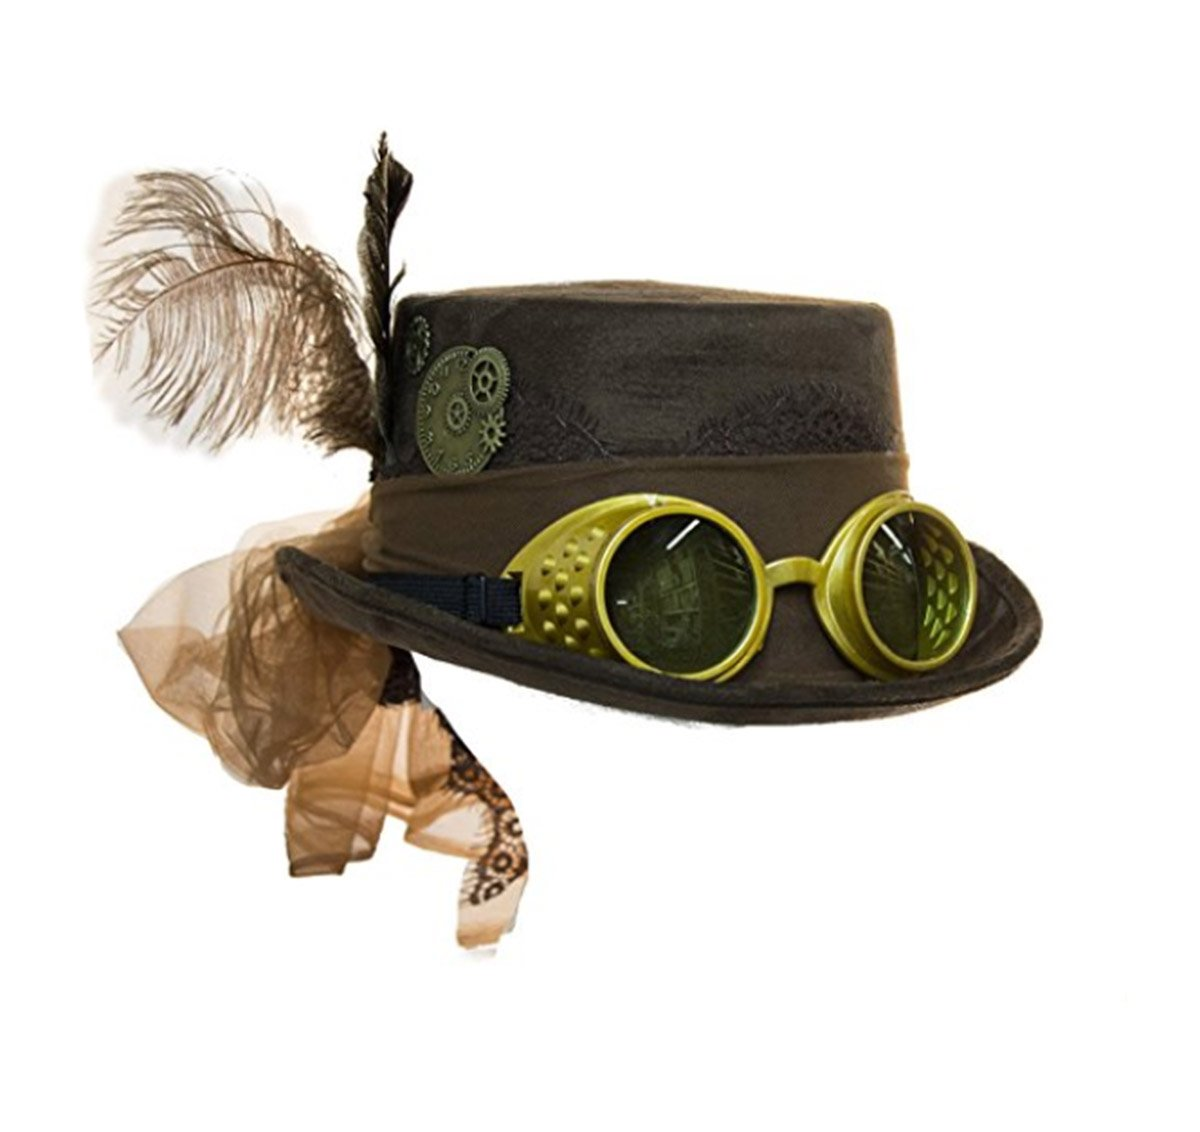 Deluxe Velvet 4.25 Inch Steampunk Top Hat with Removable Goggles Black One Size Jacobson Hat Co. Inc. 27043